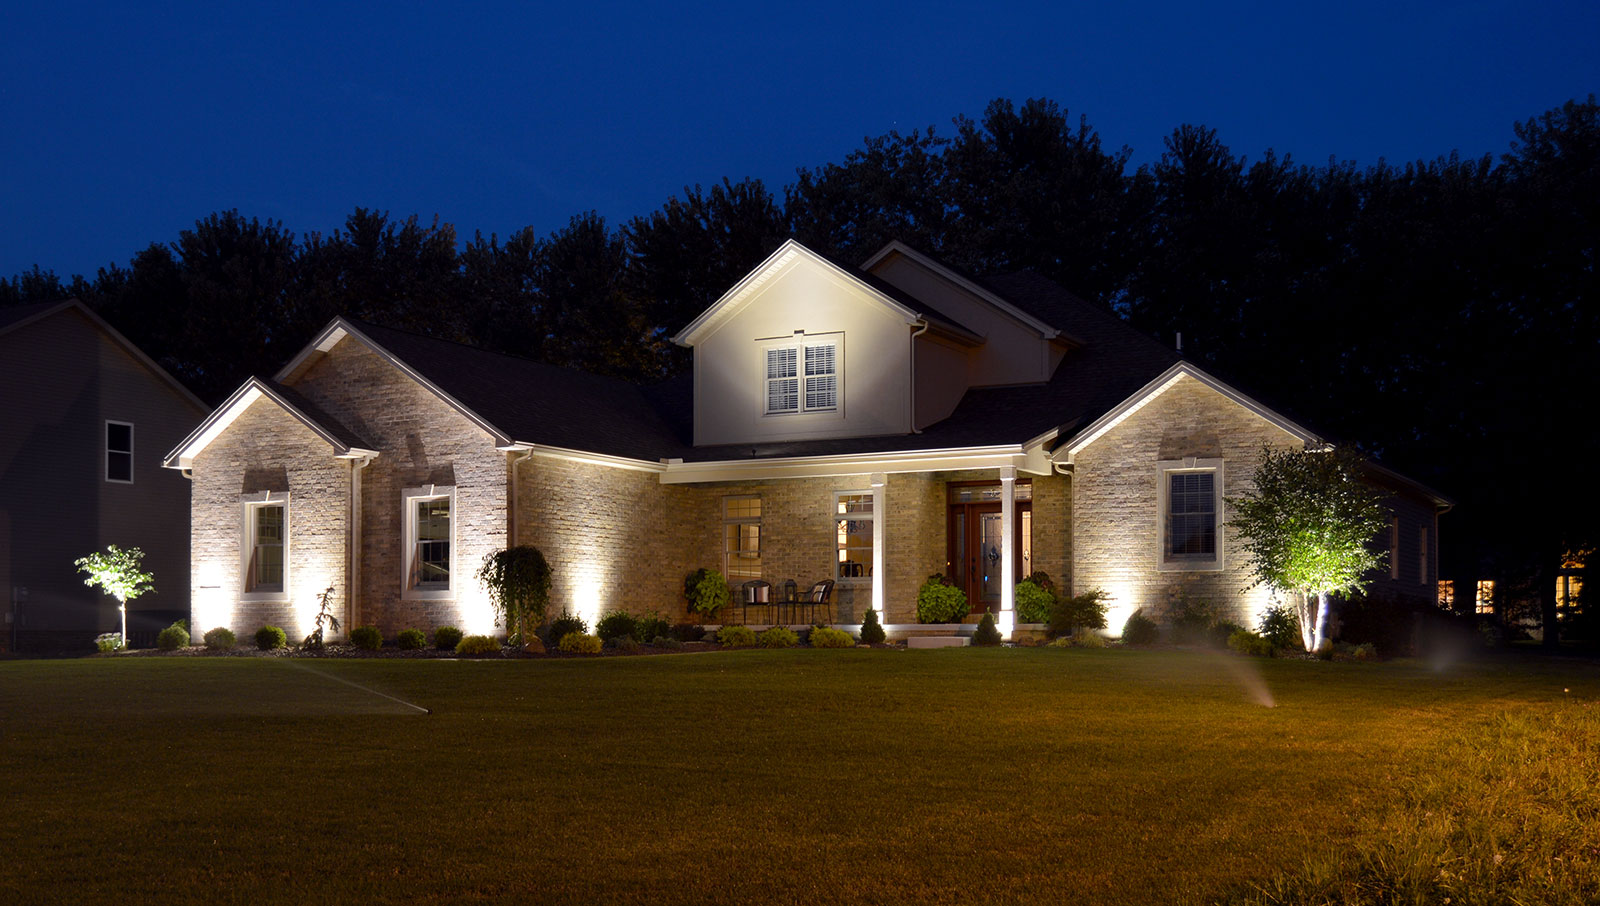 6 Reasons To Invest In Outdoor Lighting